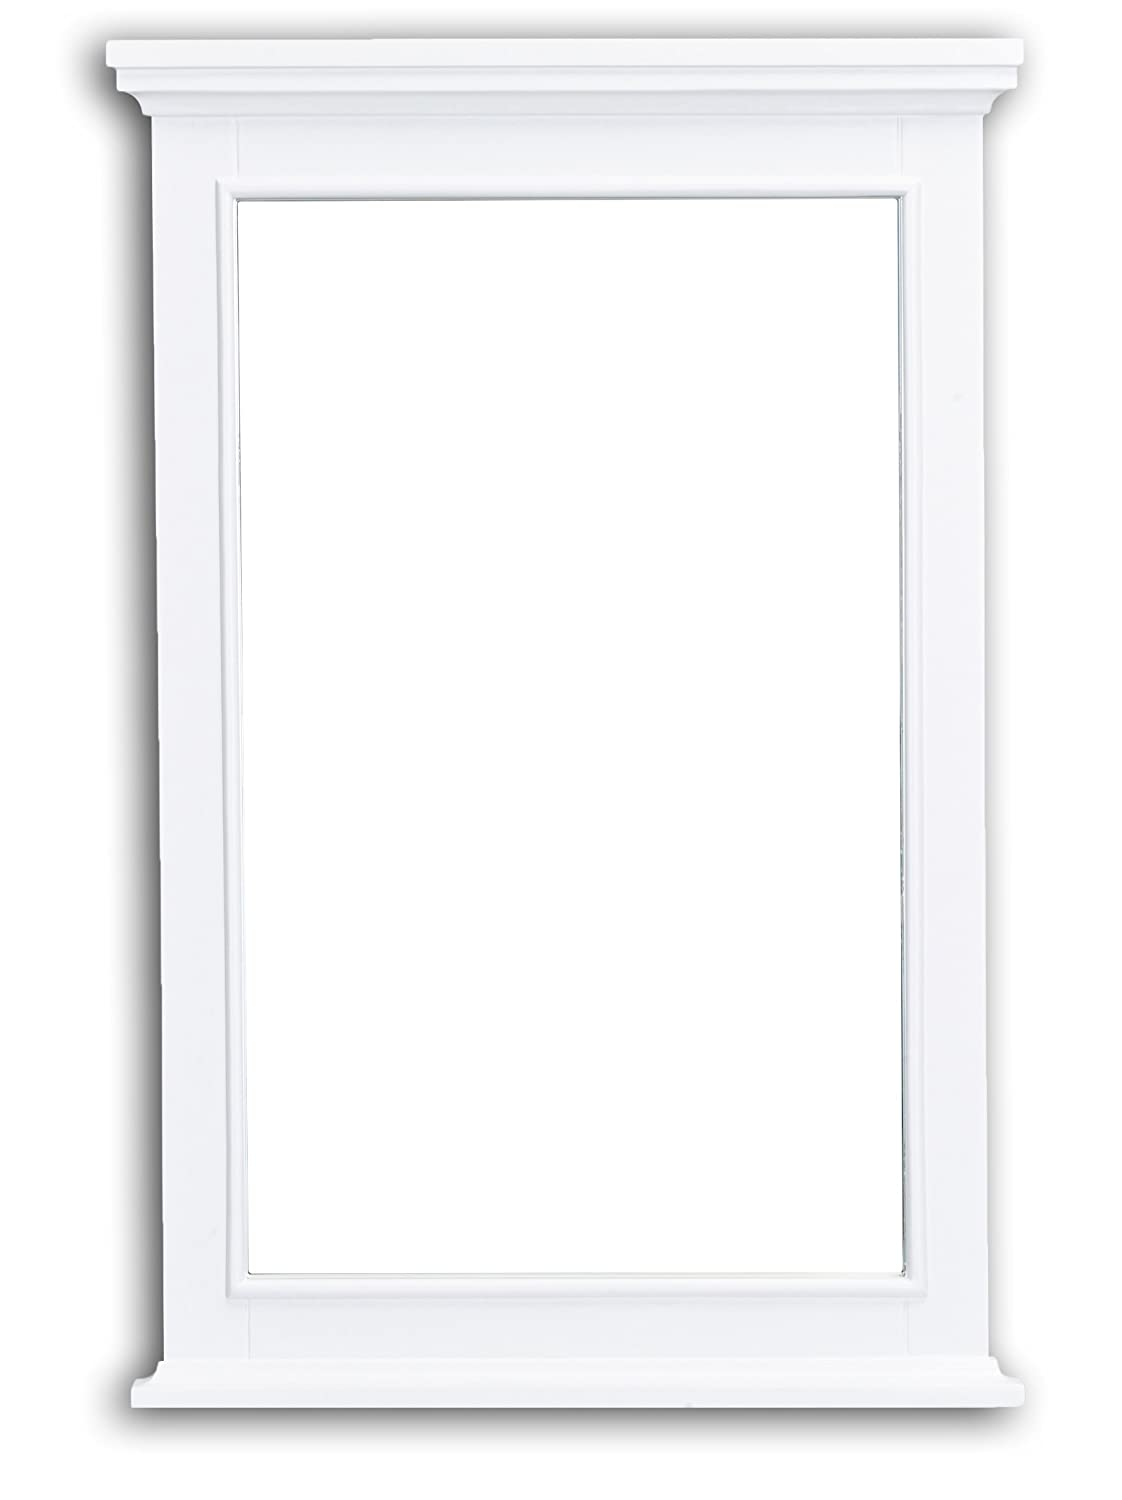 Eviva EVMR709-24WH Elite Stamford White Full Framed Bathroom Vanity Mirror Combination